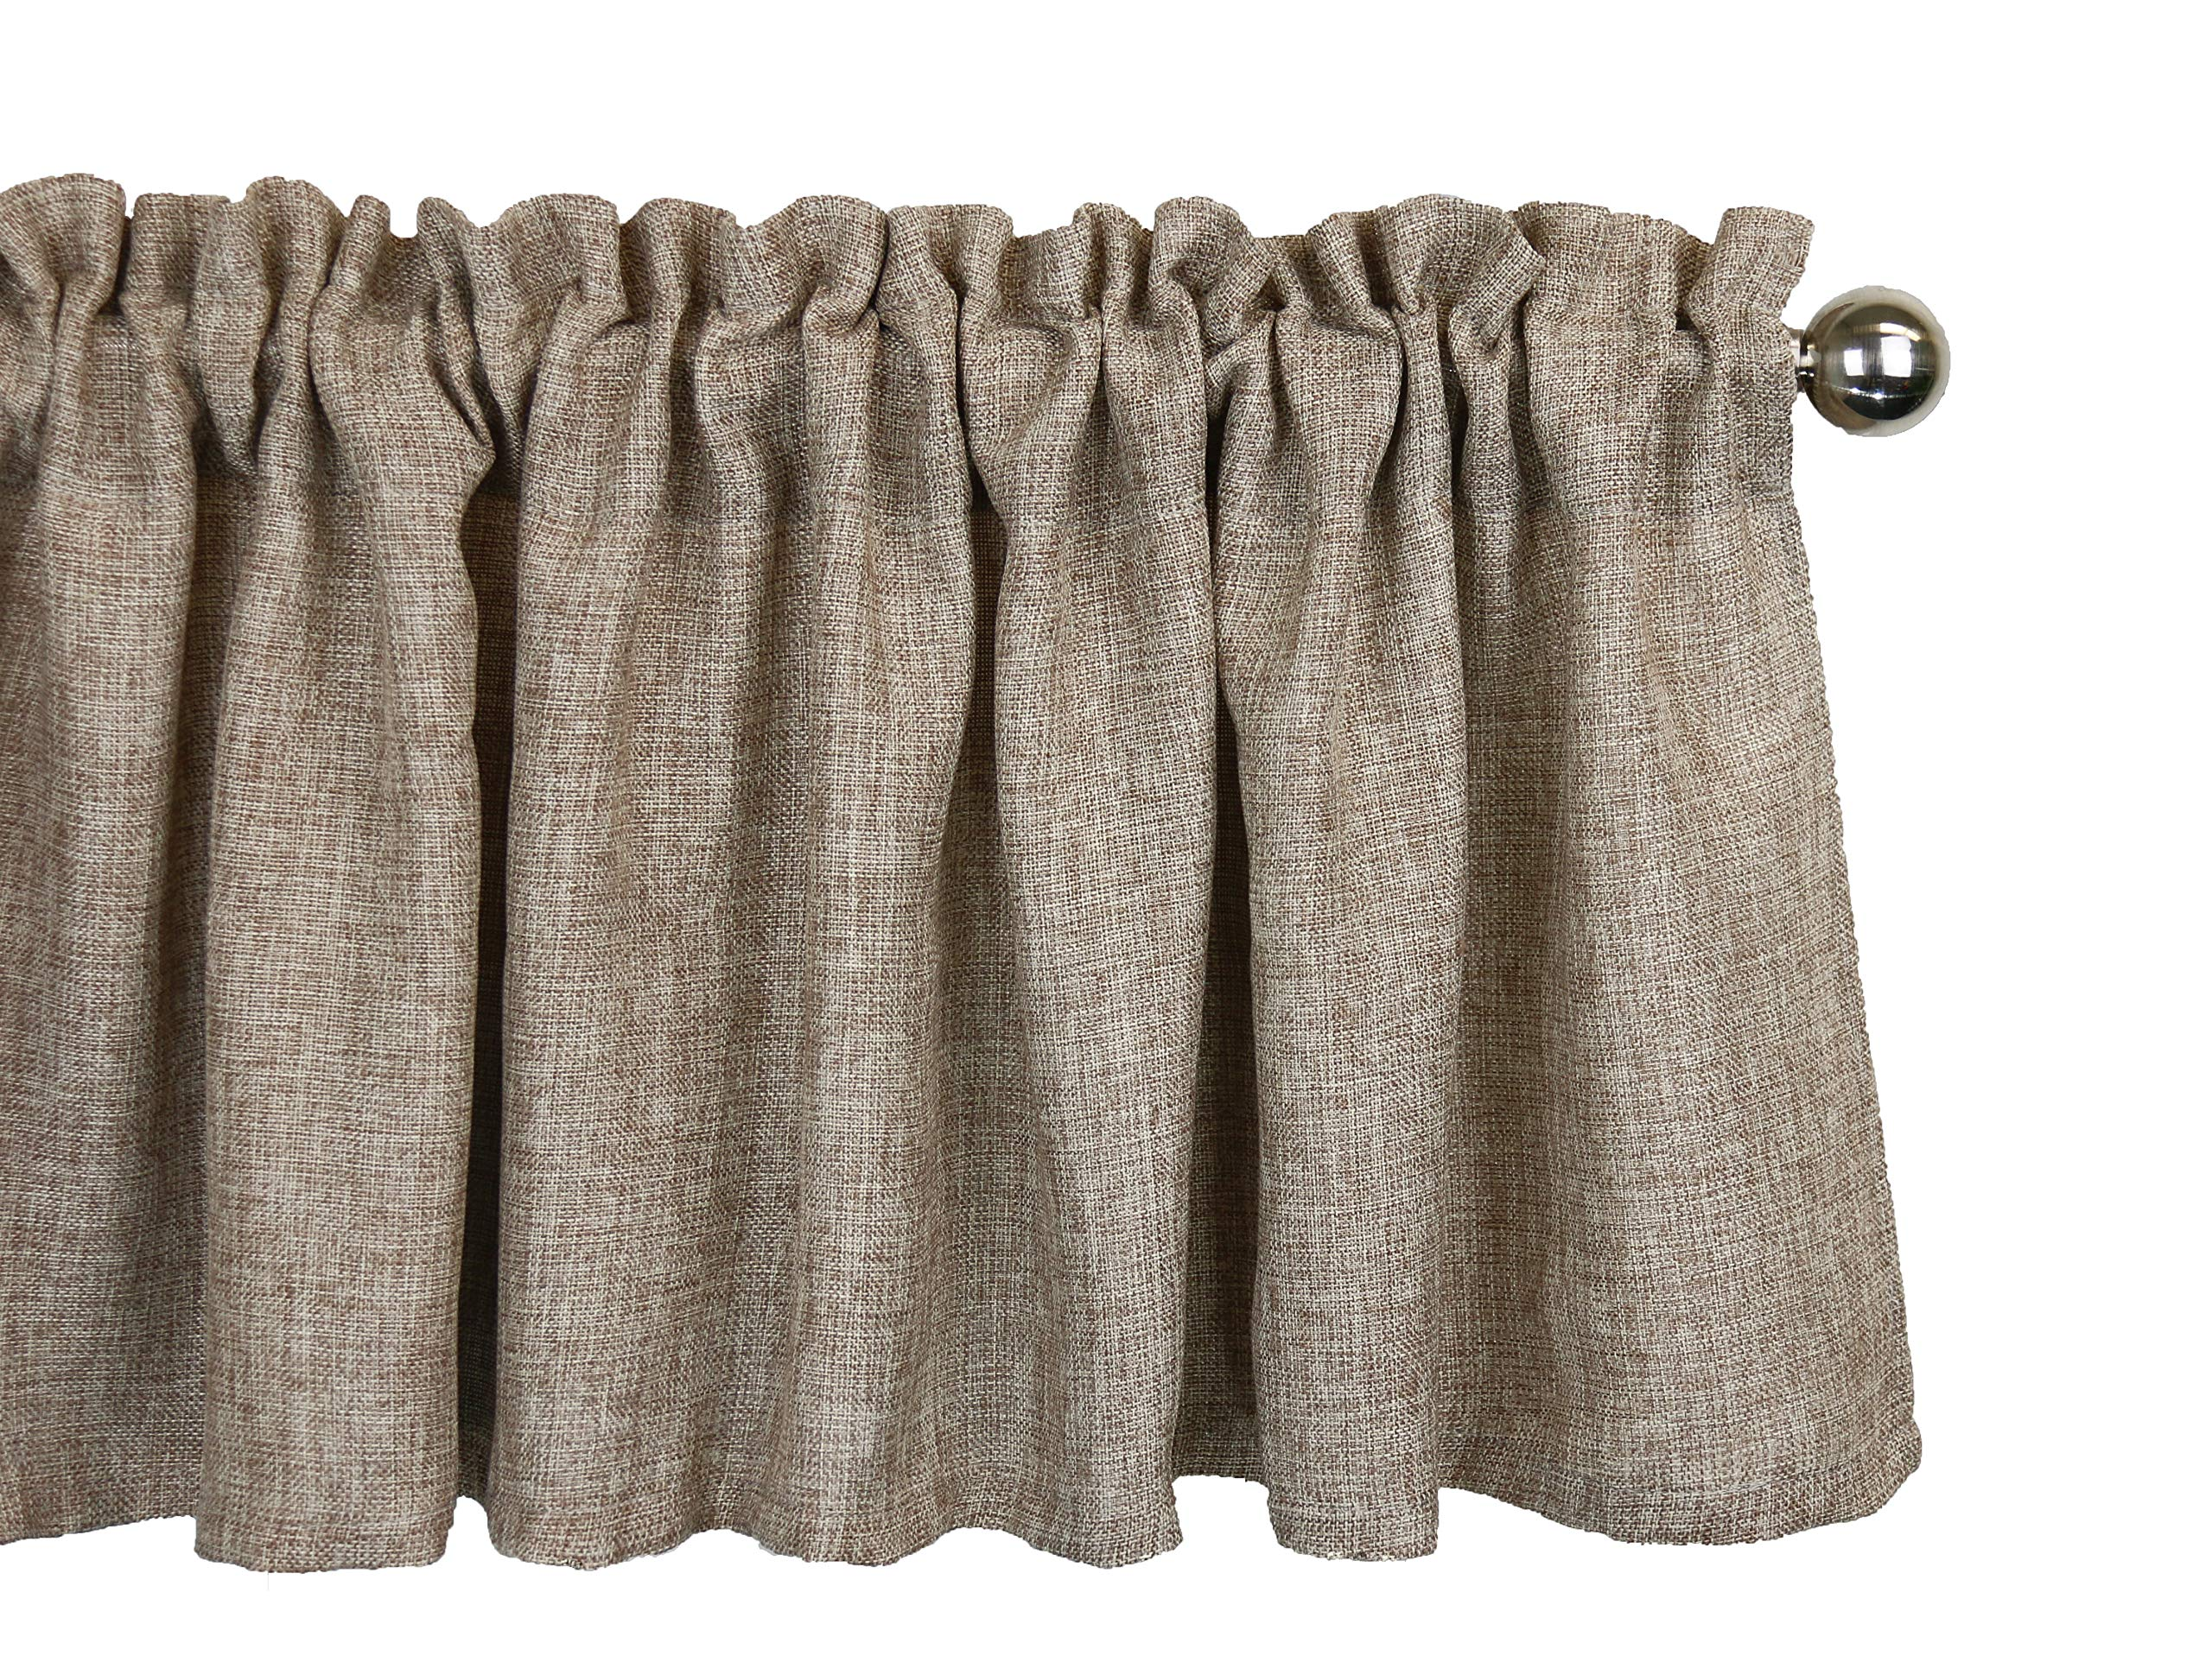 Aiking Home Pure 100% Faux Linen Window Valance - Size 56 inch x 16 inch, Wheat